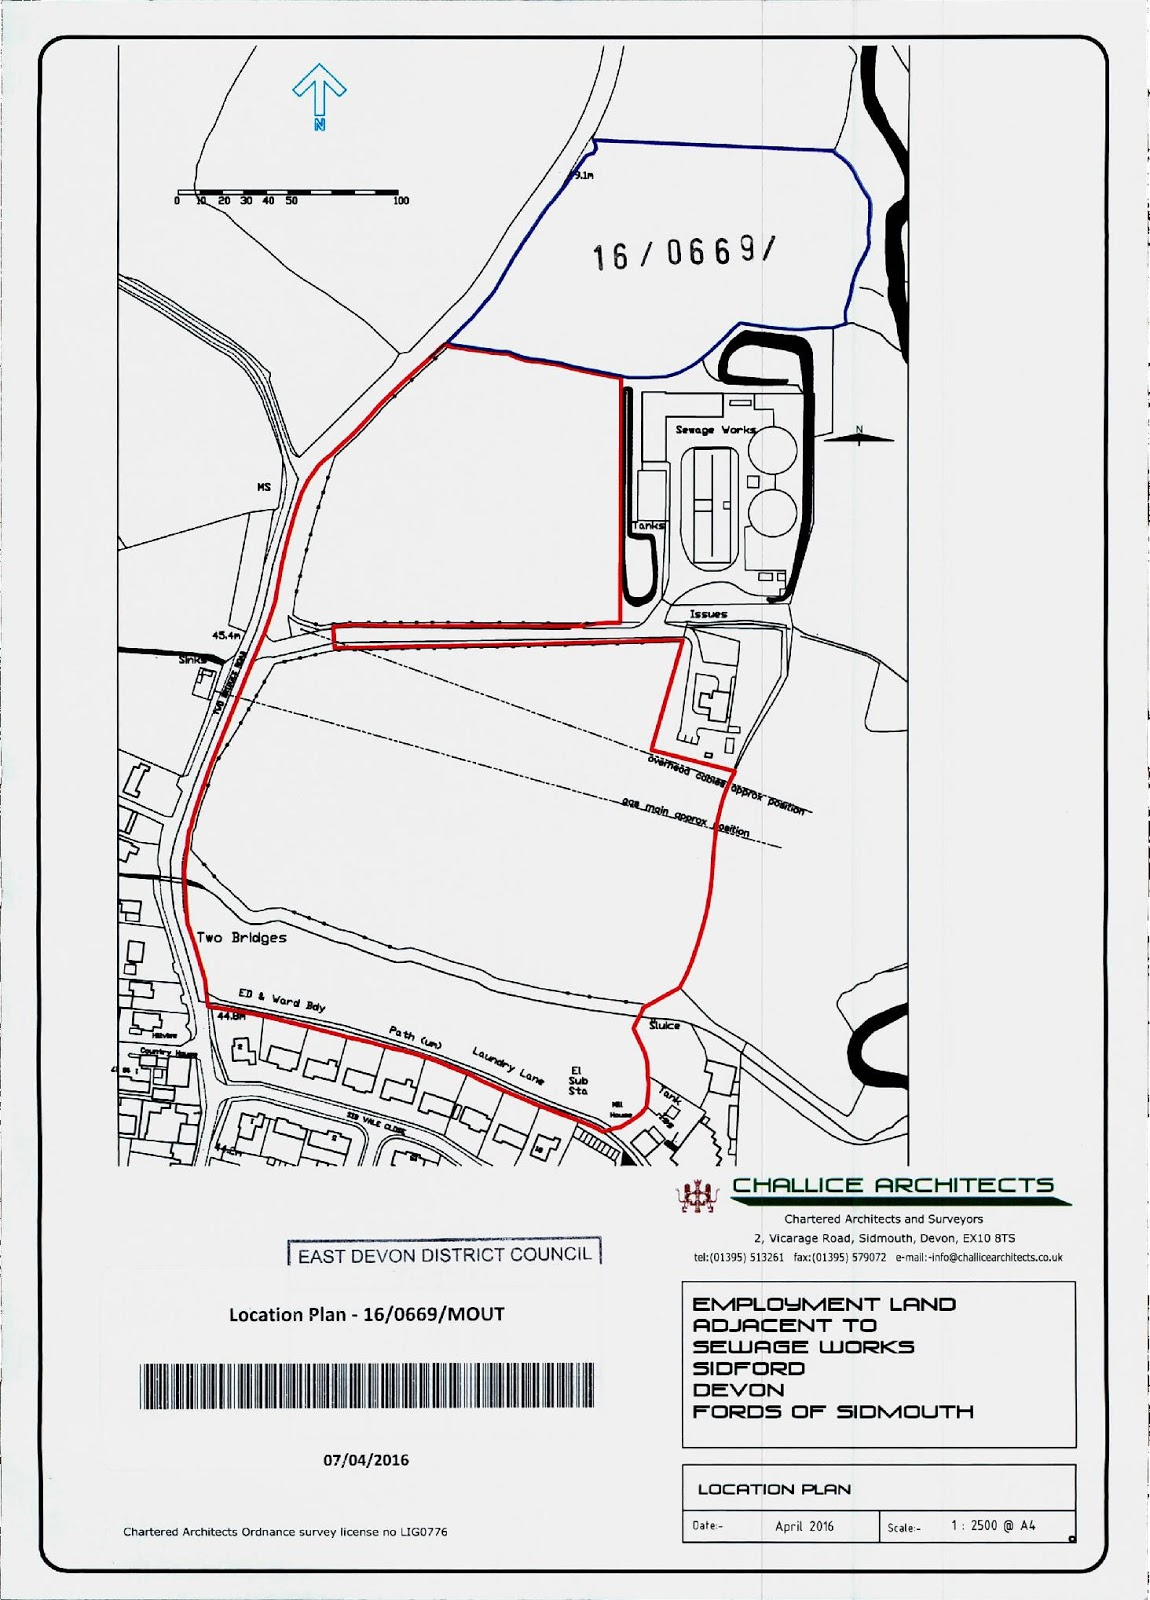 Futures Forum Sidford Business Park Gtgtgt Planning Application Plans